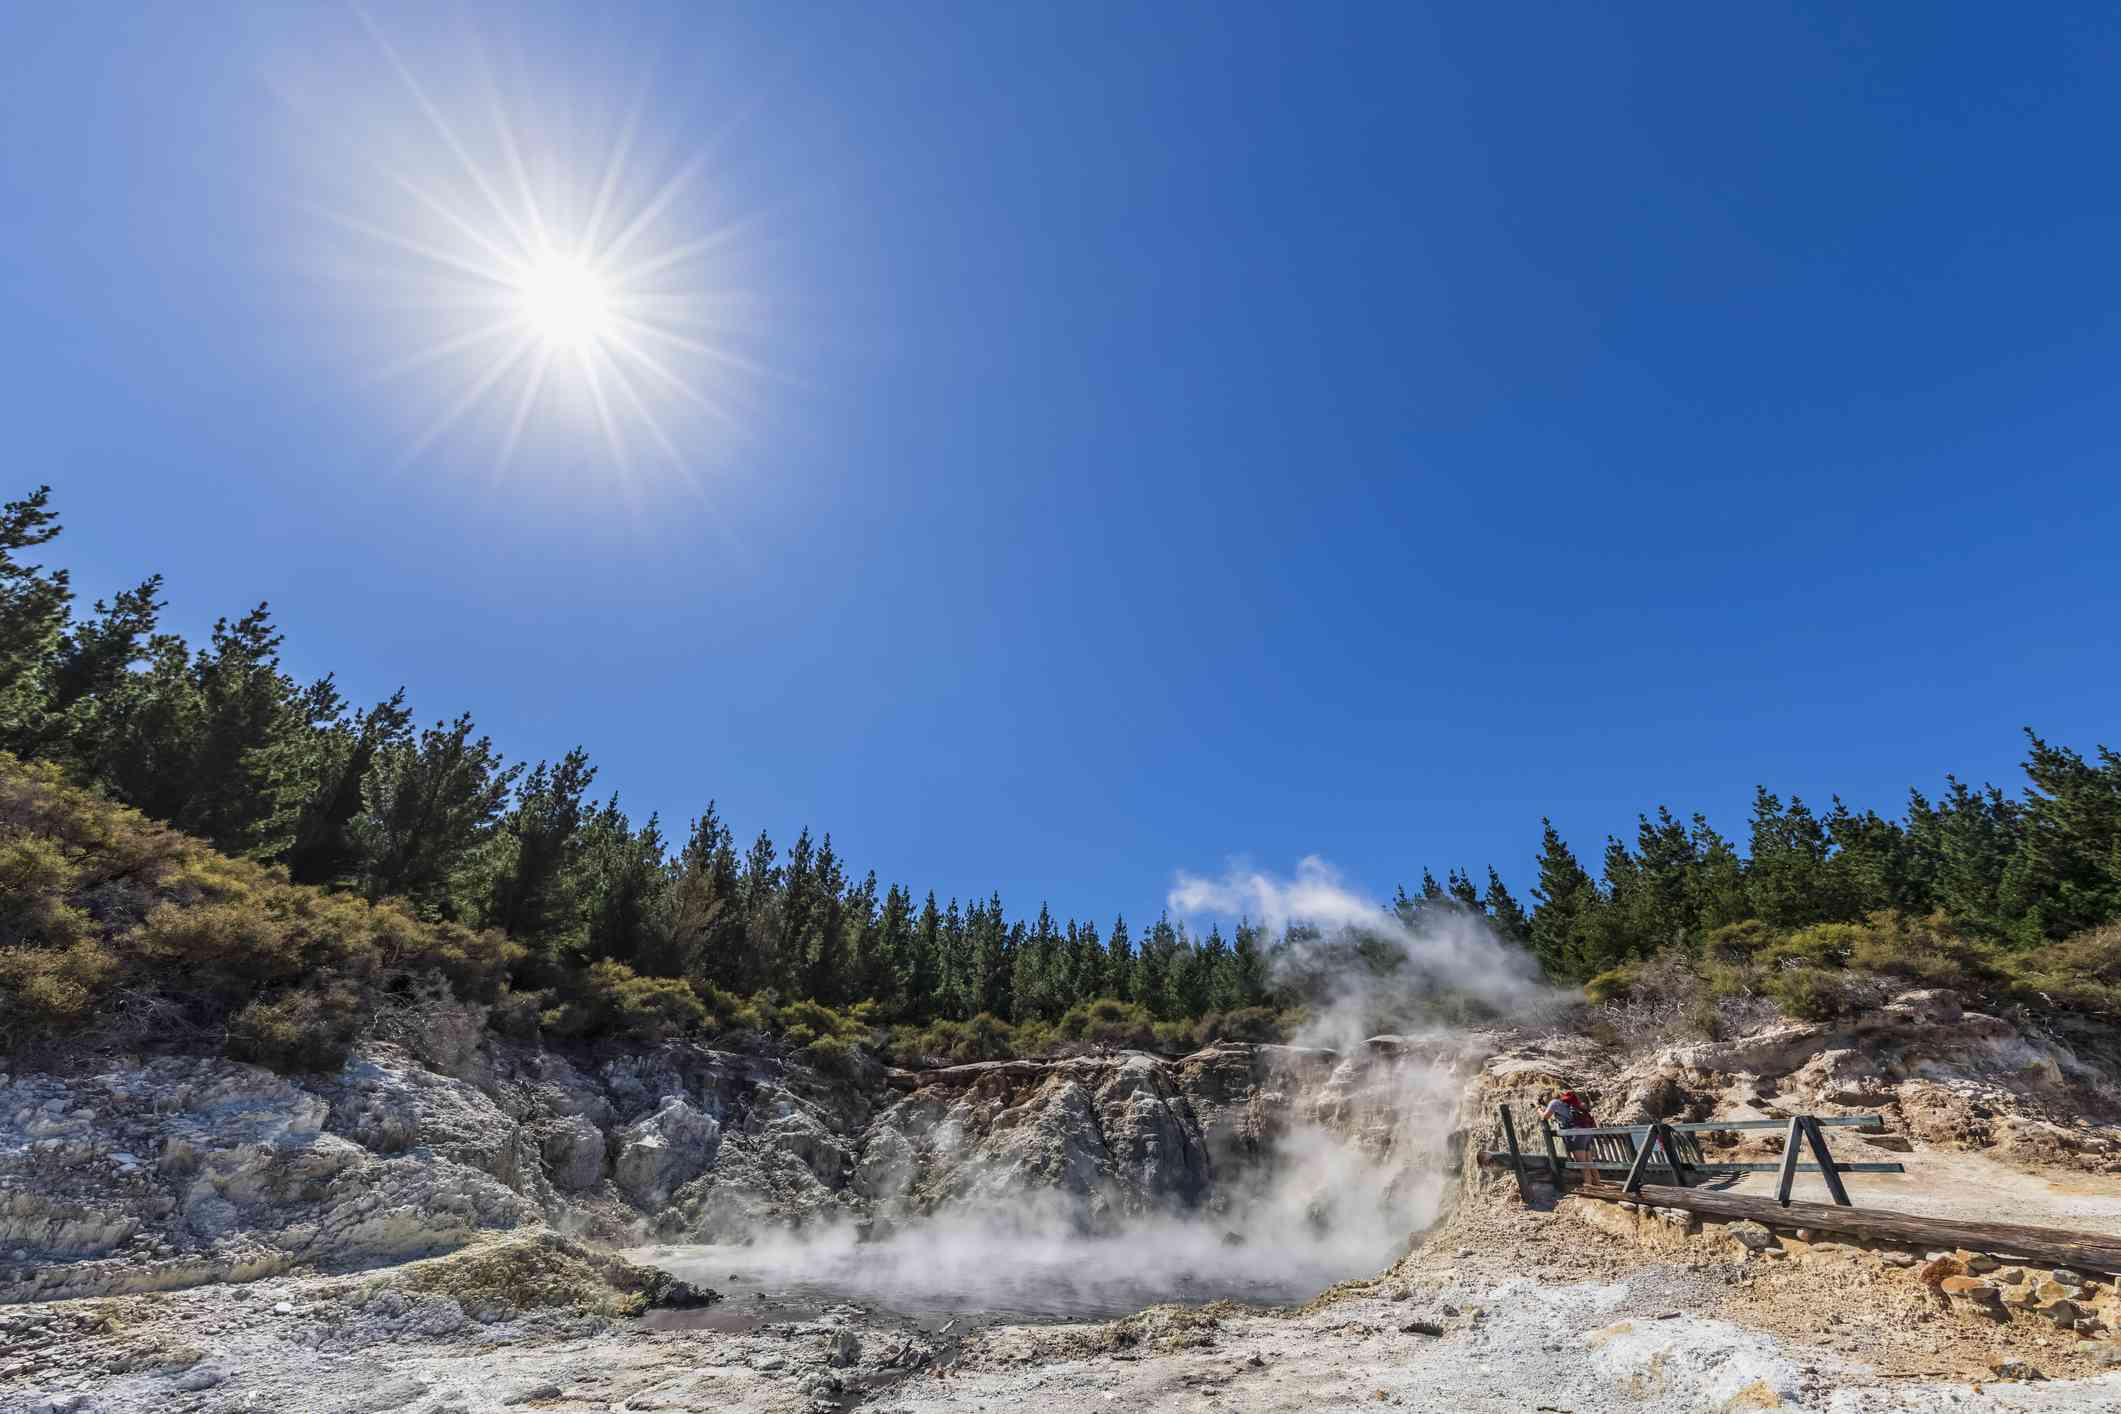 steaming hot spring surrounded by evergreen trees with the sun beaming overhead